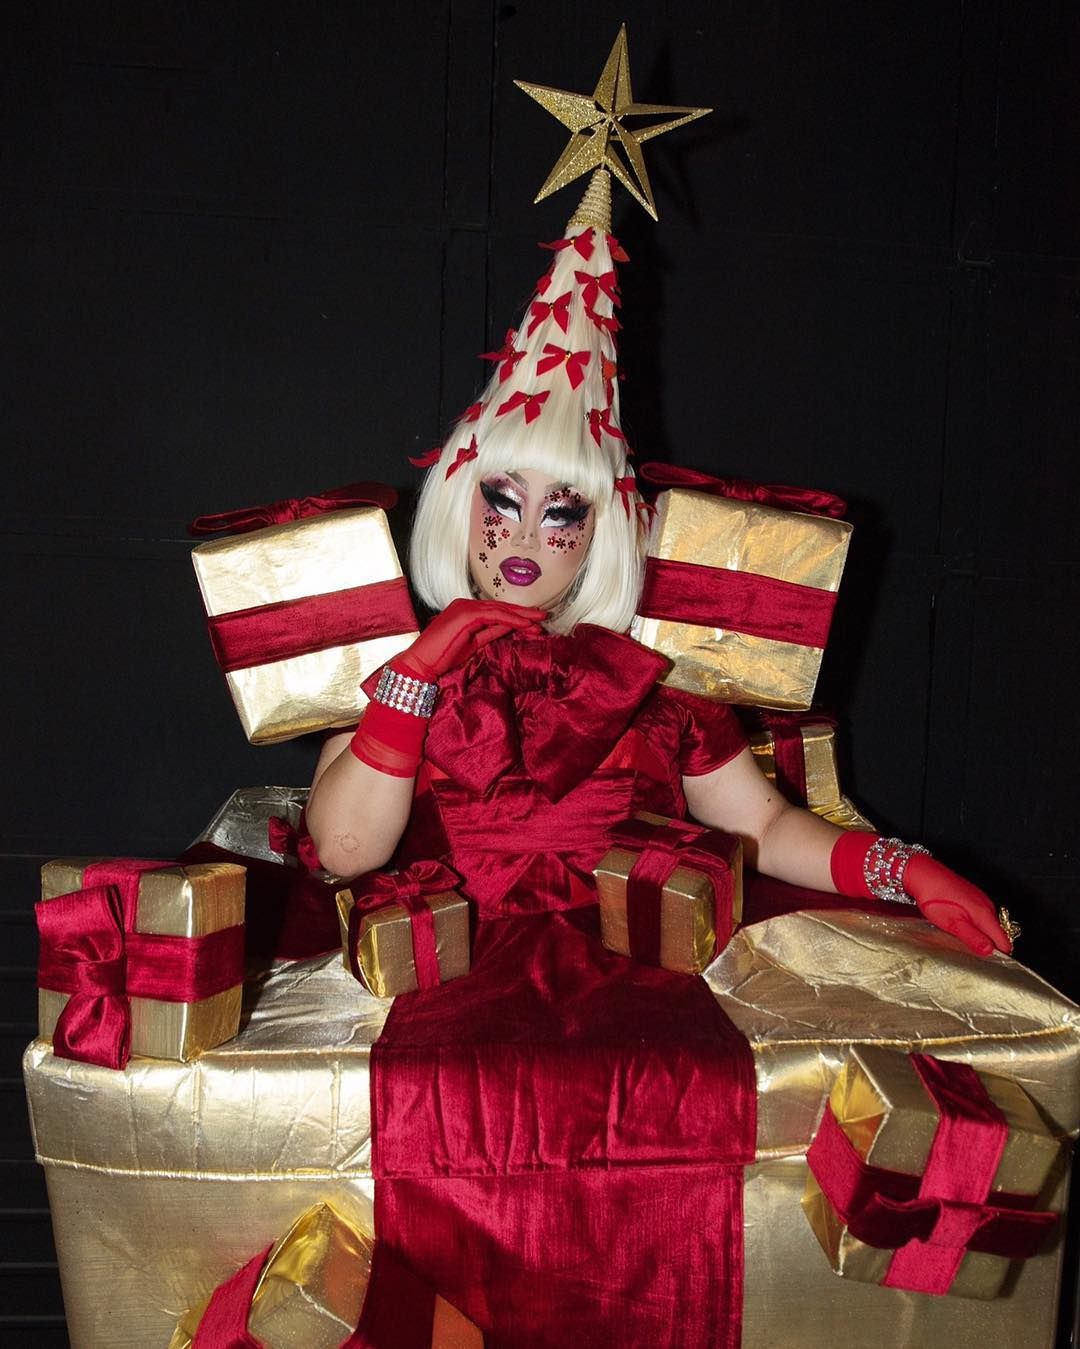 Rupauls Christmas Special.Kim Chi On Instagram I M Living In The Present Merry